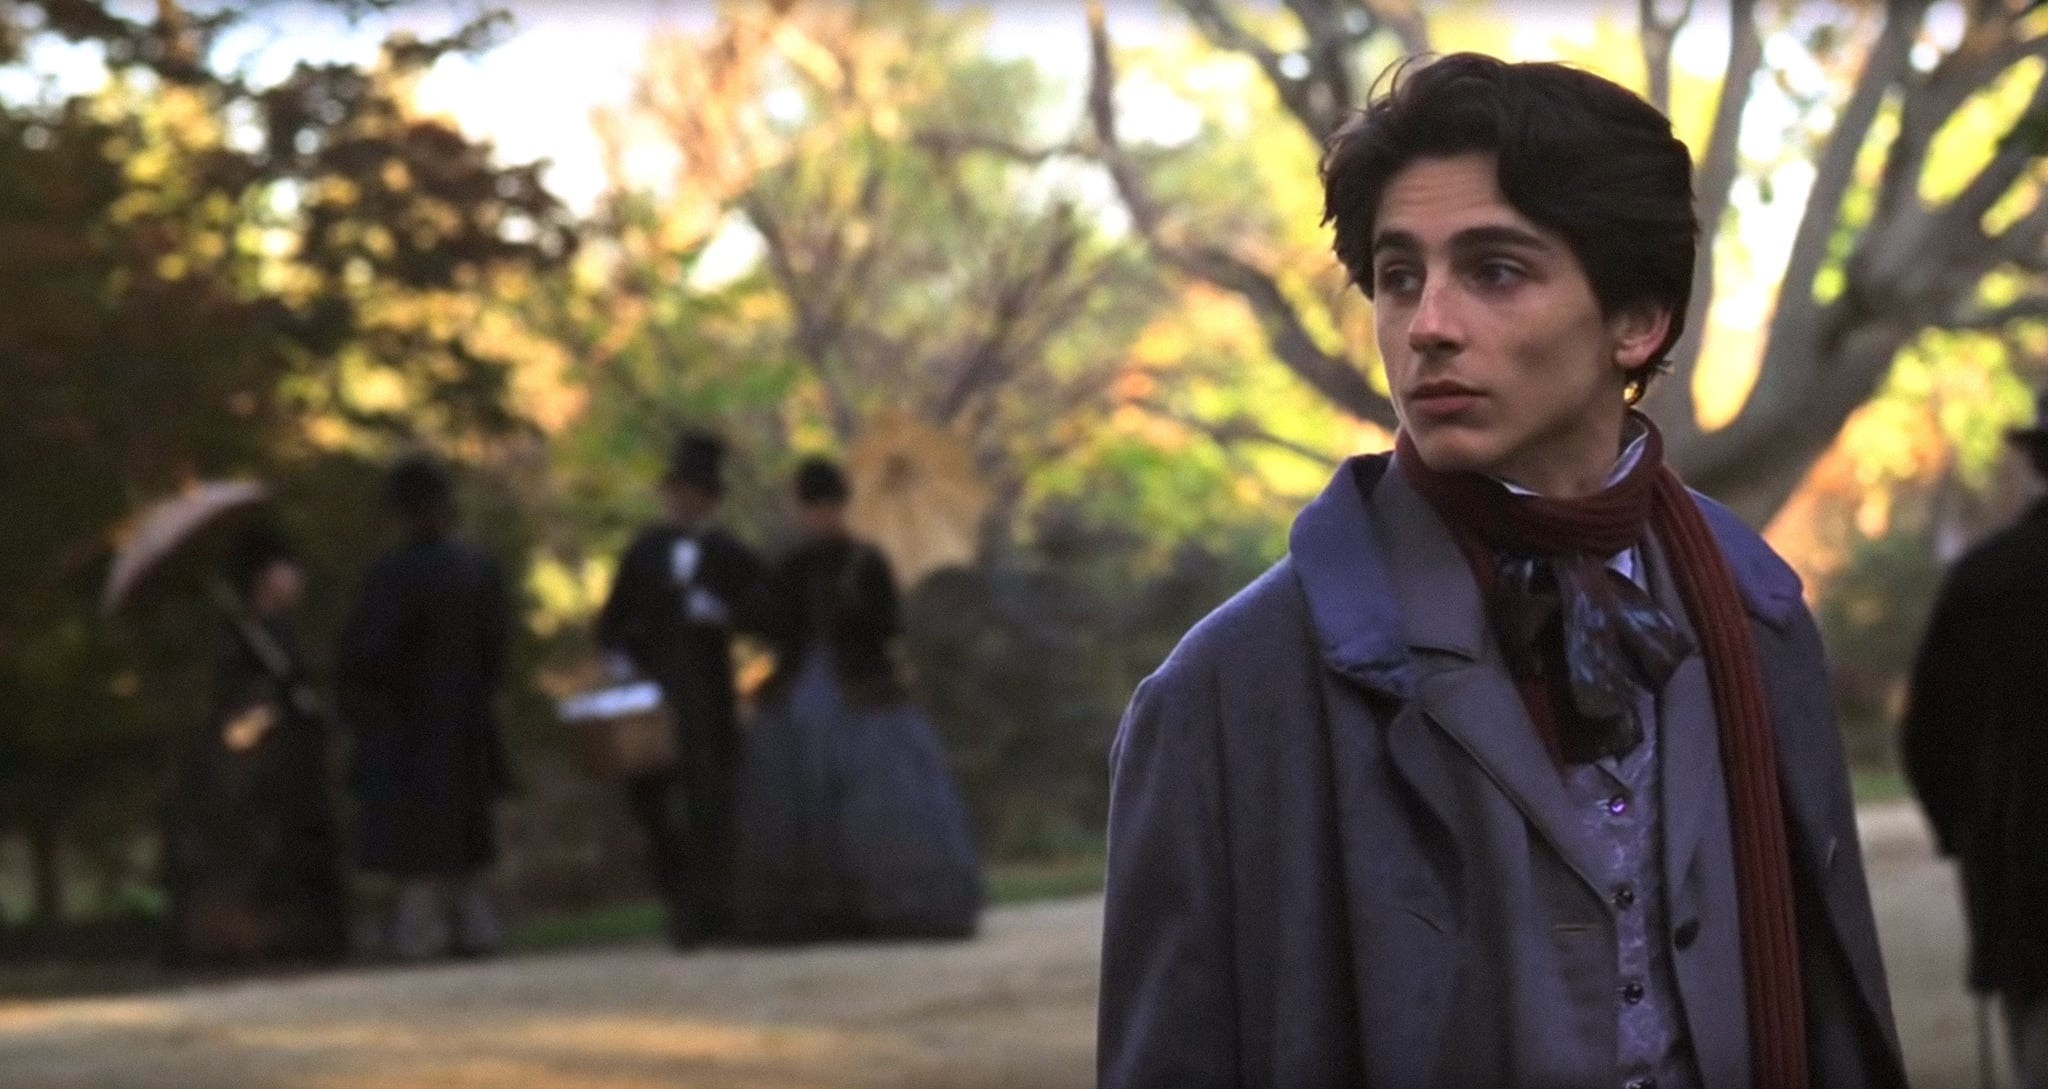 LITTLE WOMEN, Timothee Chalamet as Laurie, 2019.  Columbia Pictures / courtesy Everett Collection